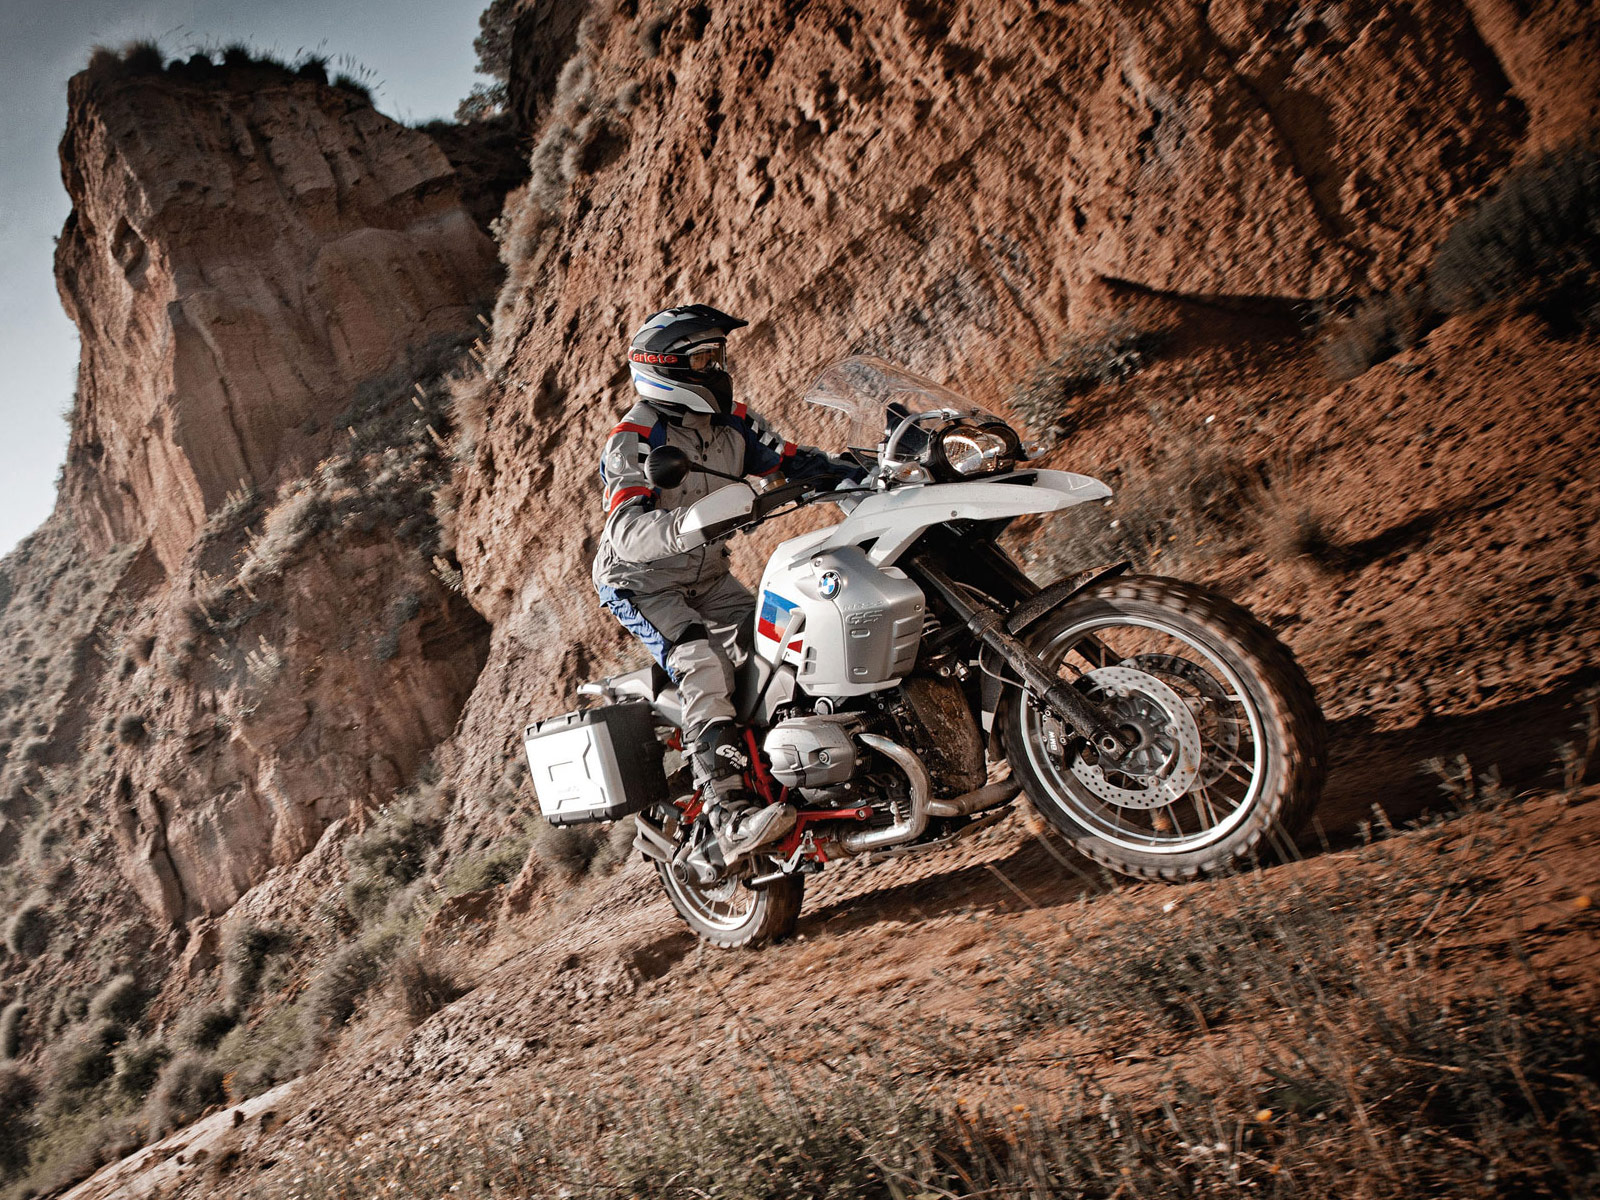 2012 BMW R1200GS Rallye Desktop Wallpapers, Review